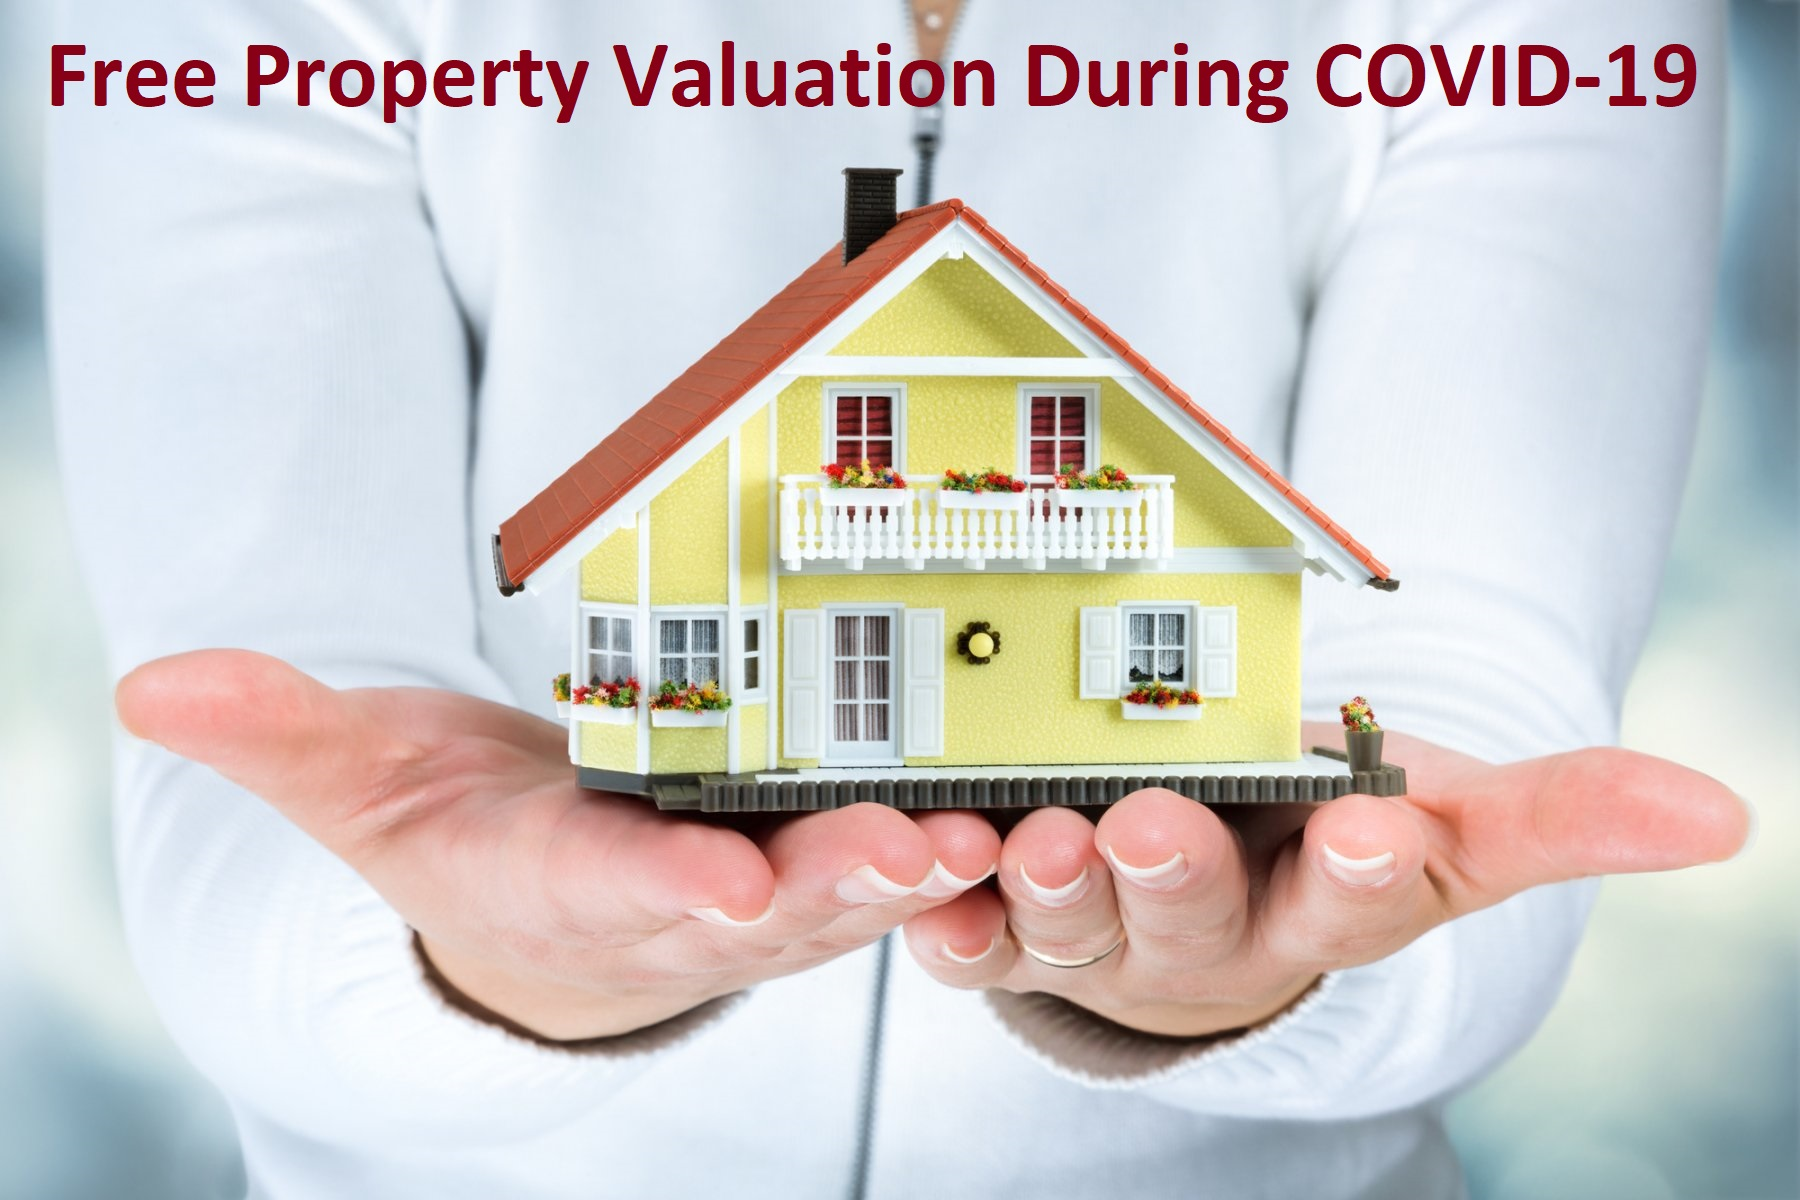 Why Need Free Property Valuation During COVID-19